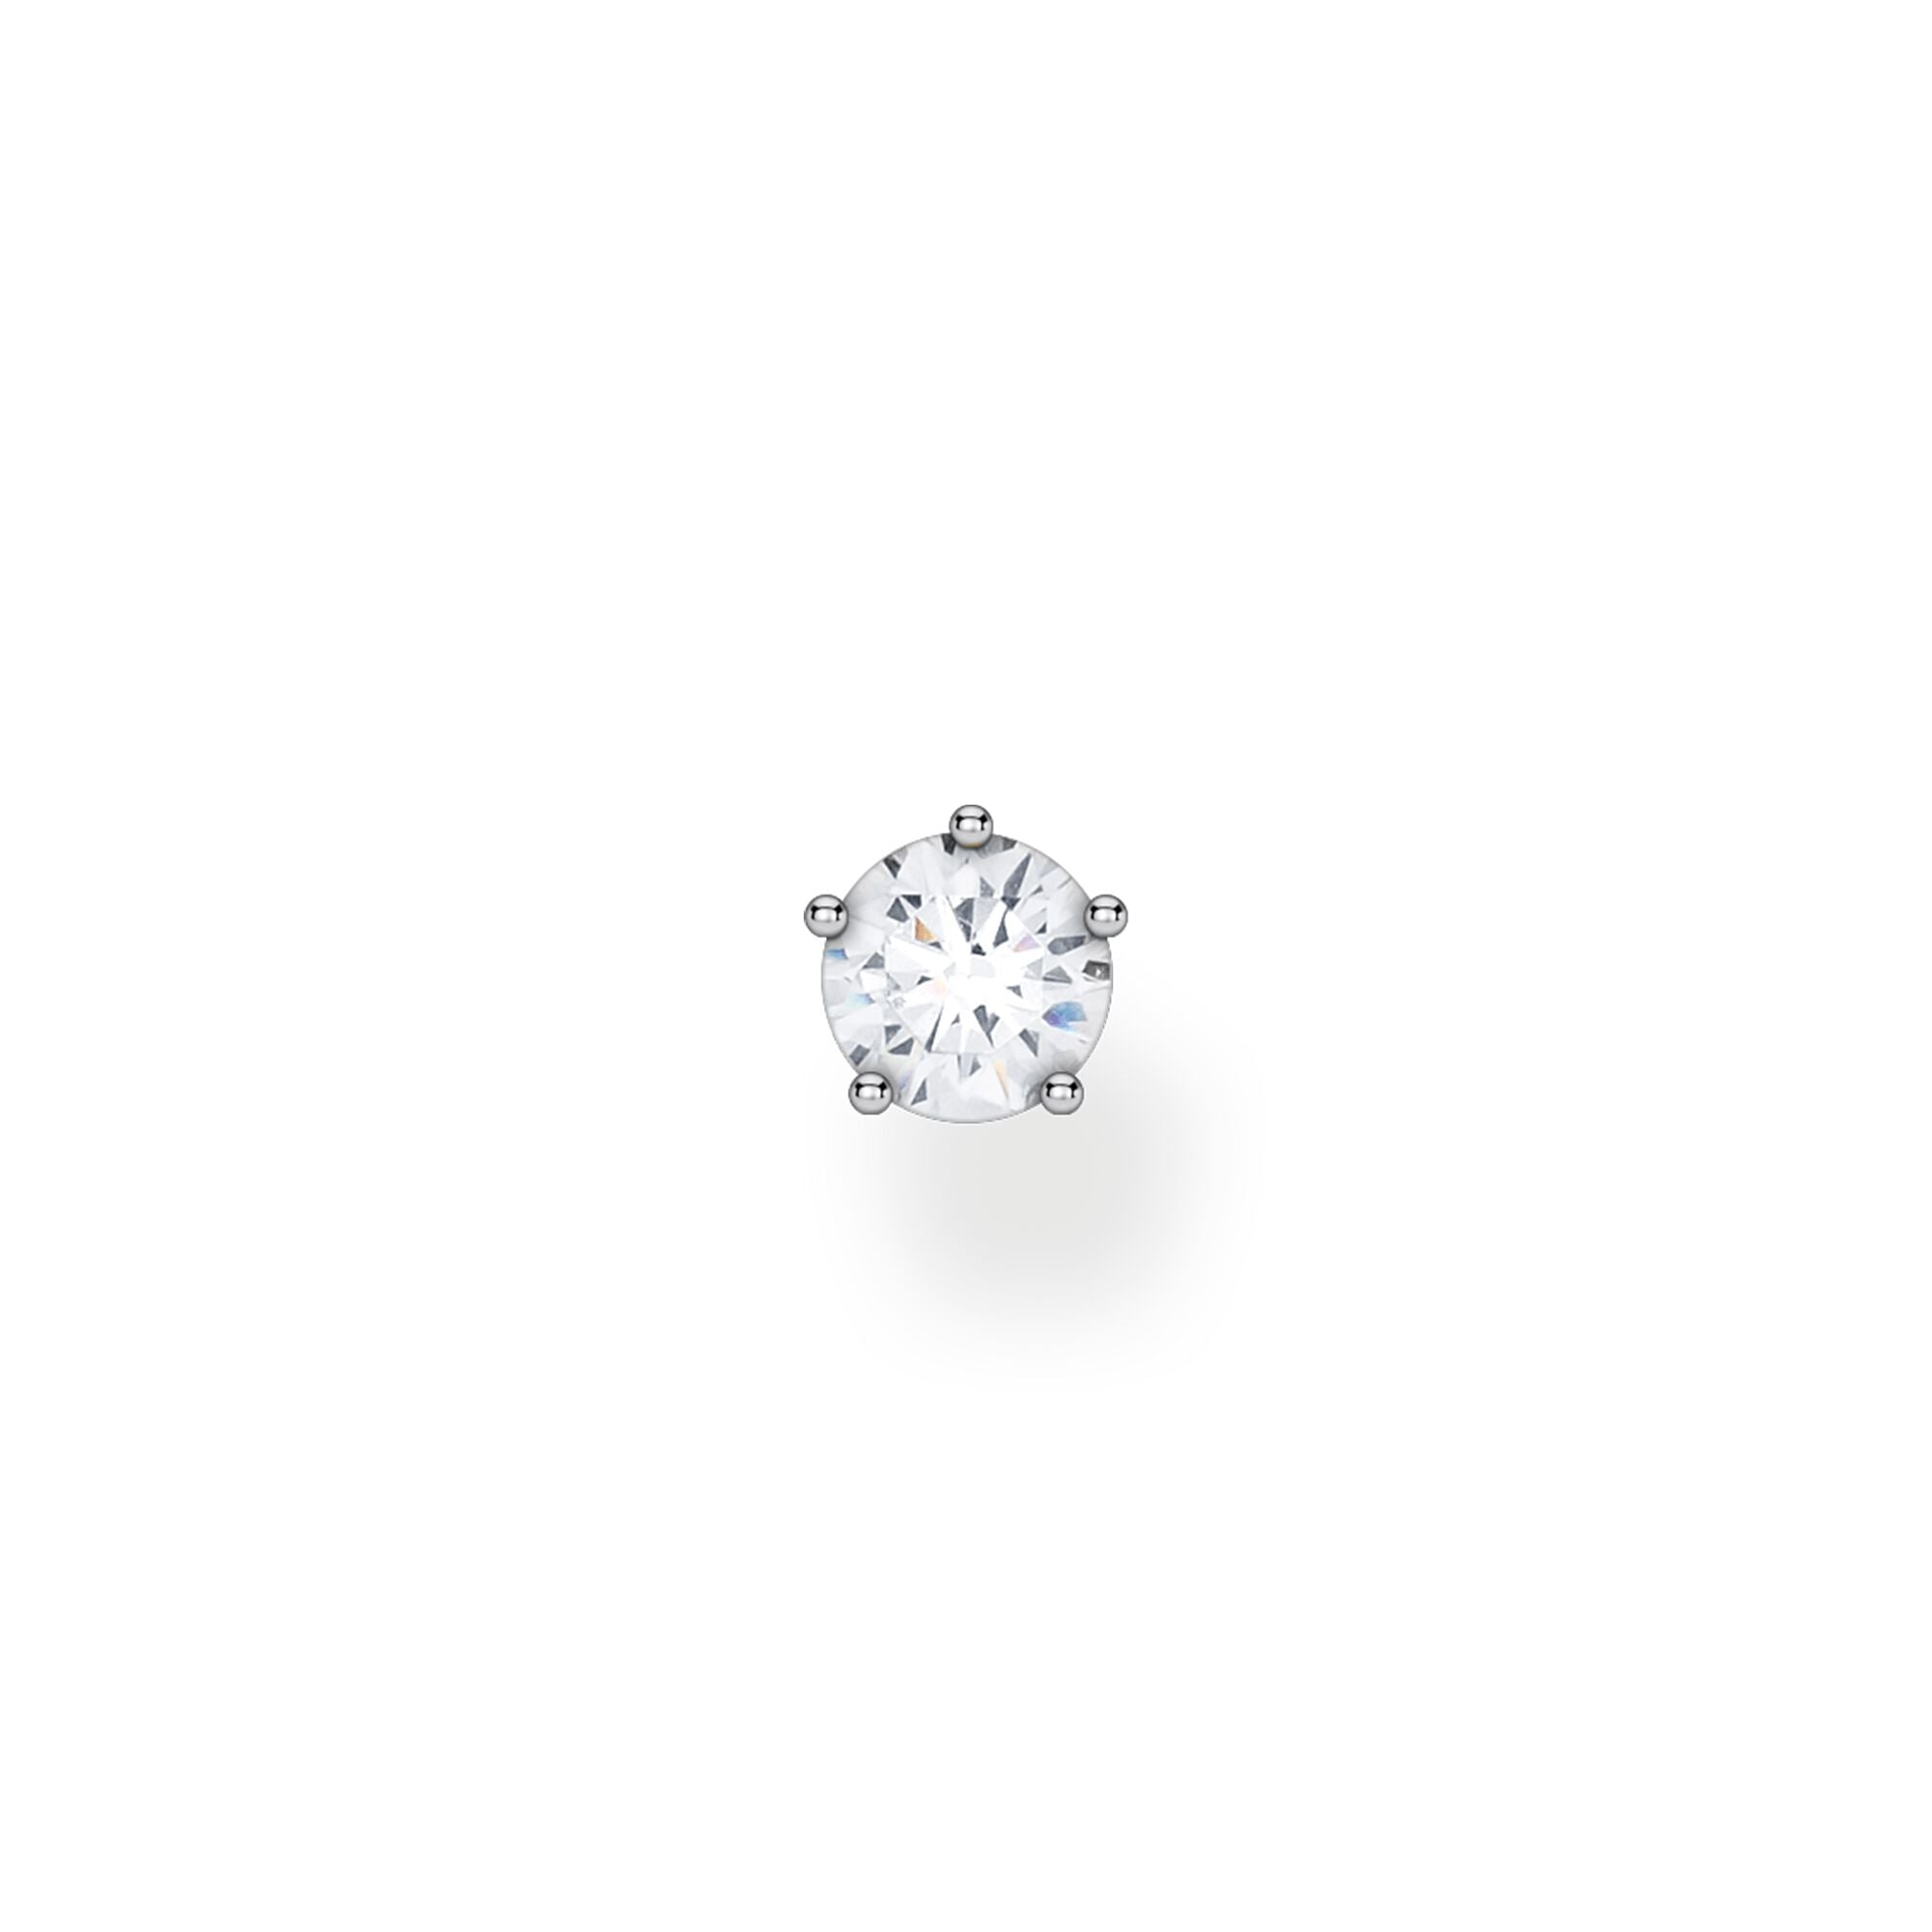 STERLING SILVER CHARMING COLLECTION LARGE CZ STUD EARRING SINGLE